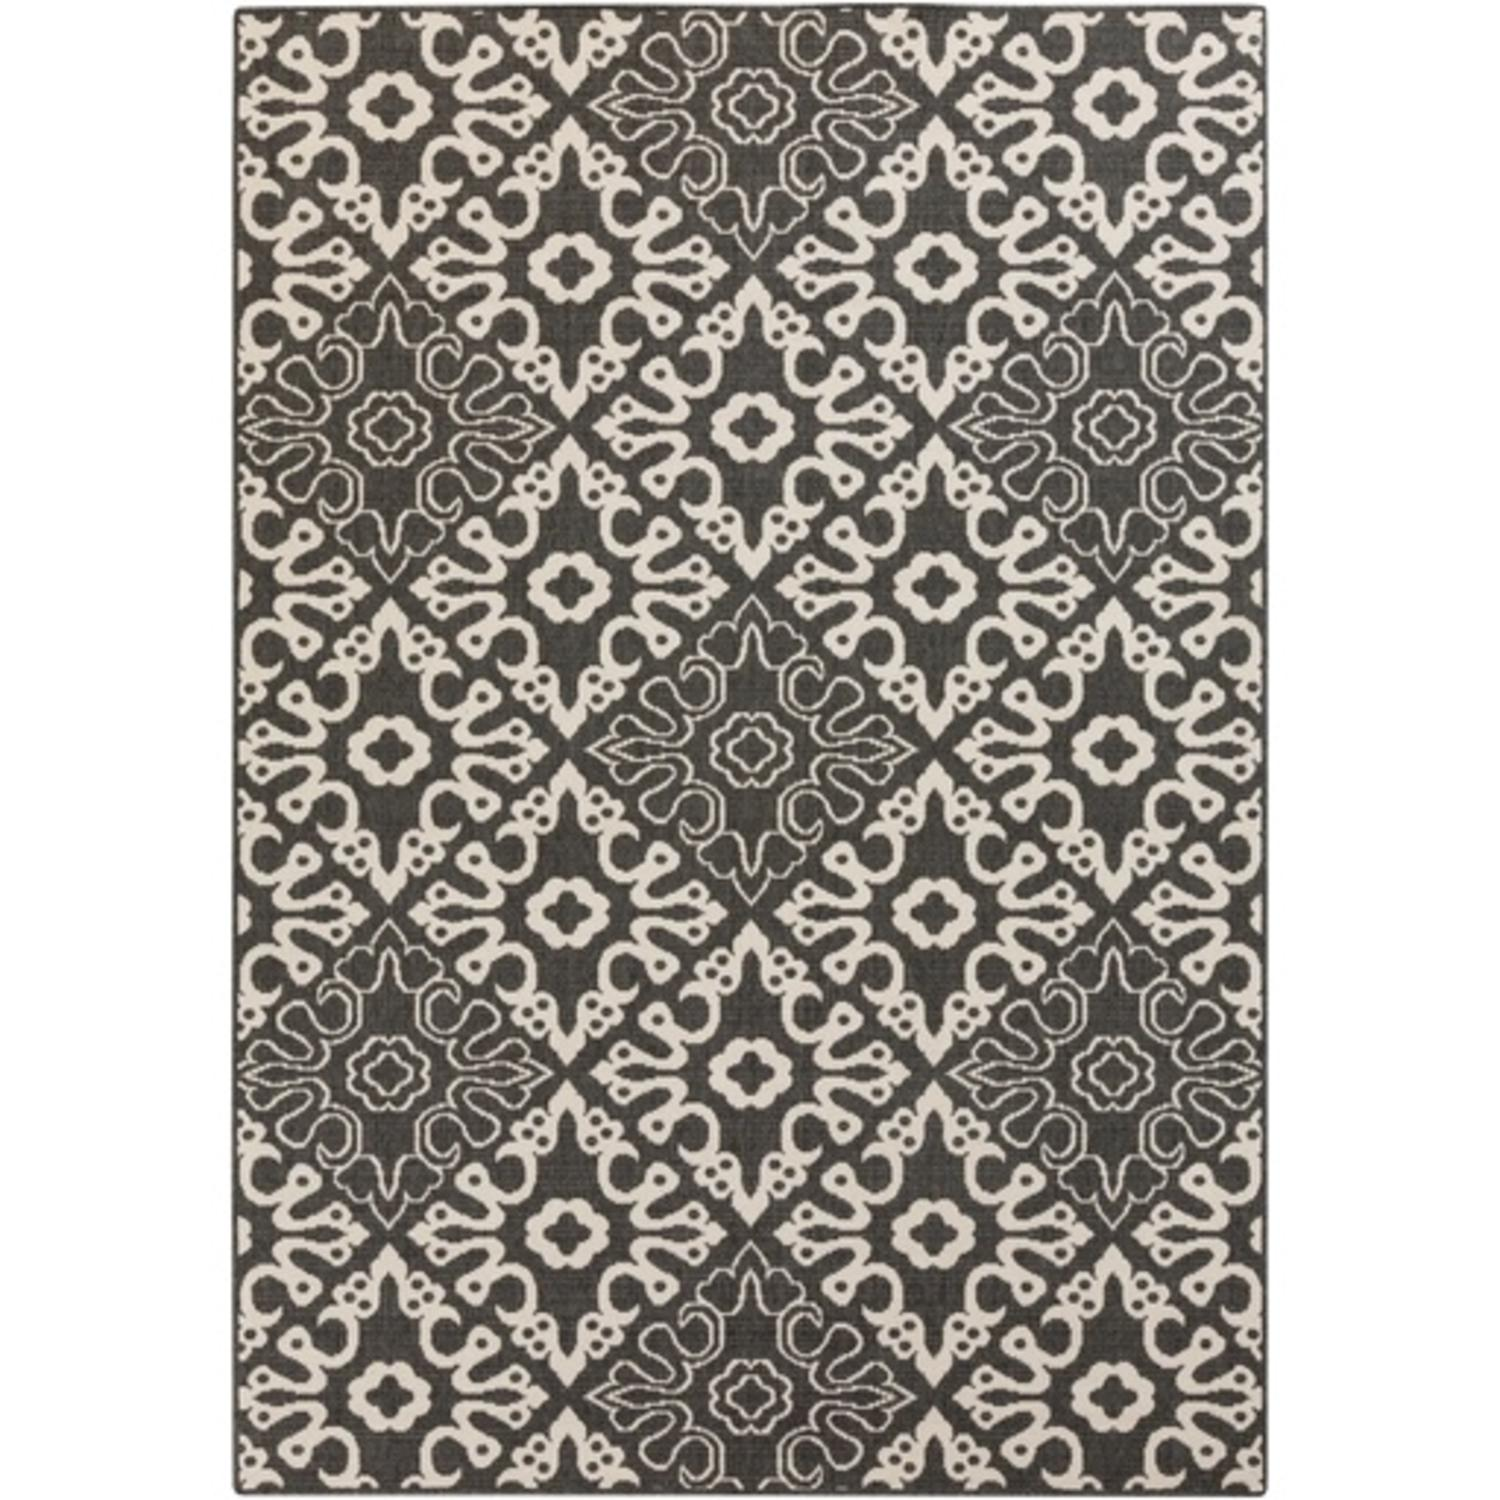 3.5' x 5.5' Majestic Medina Espresso Black and Sandy Beige Shed-Free Area Throw Rug